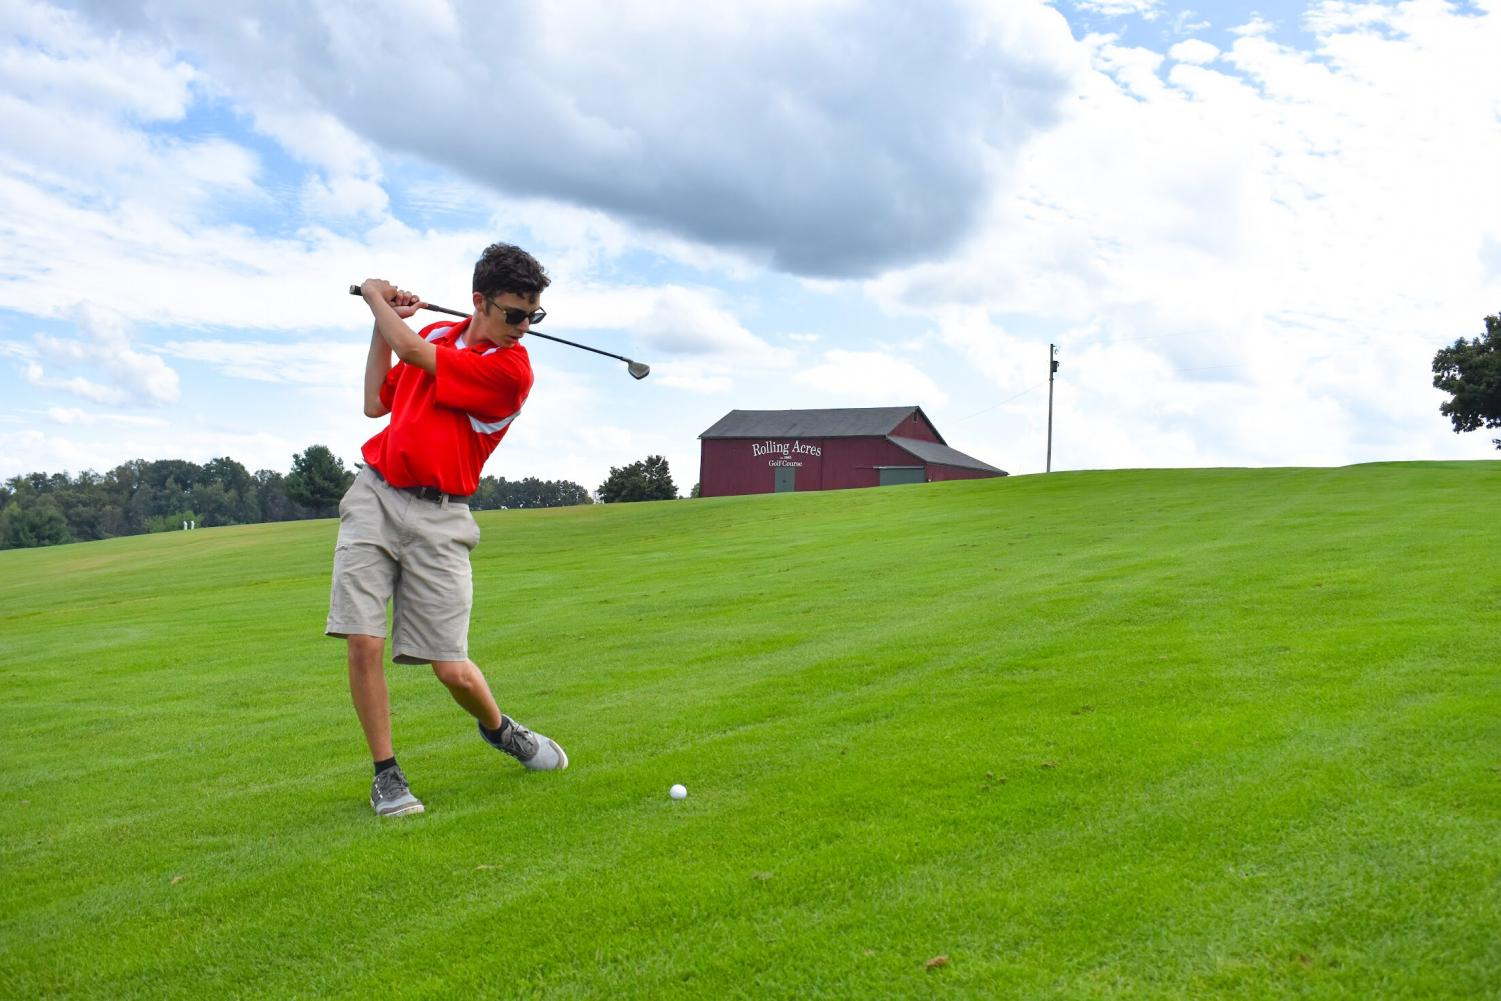 Sophomore Kameron Skrobacz pulls back his Four Hybrid to hit the ball on the North Course at Rolling Acres.